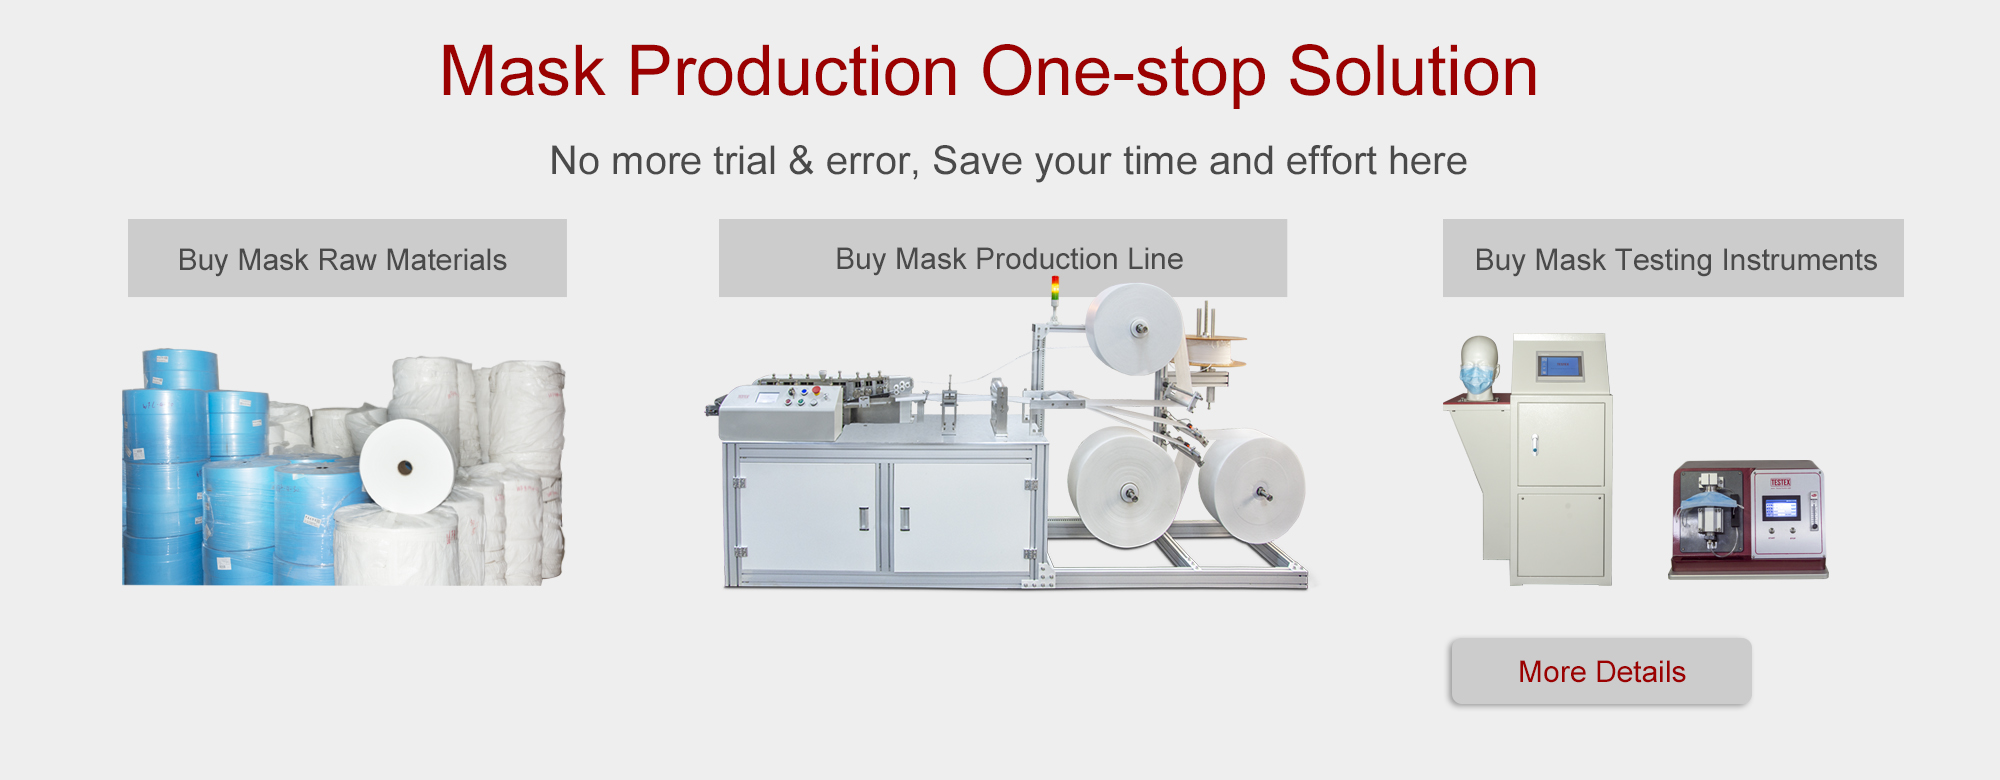 Mask Production One-Stop Solution TM120 Updates